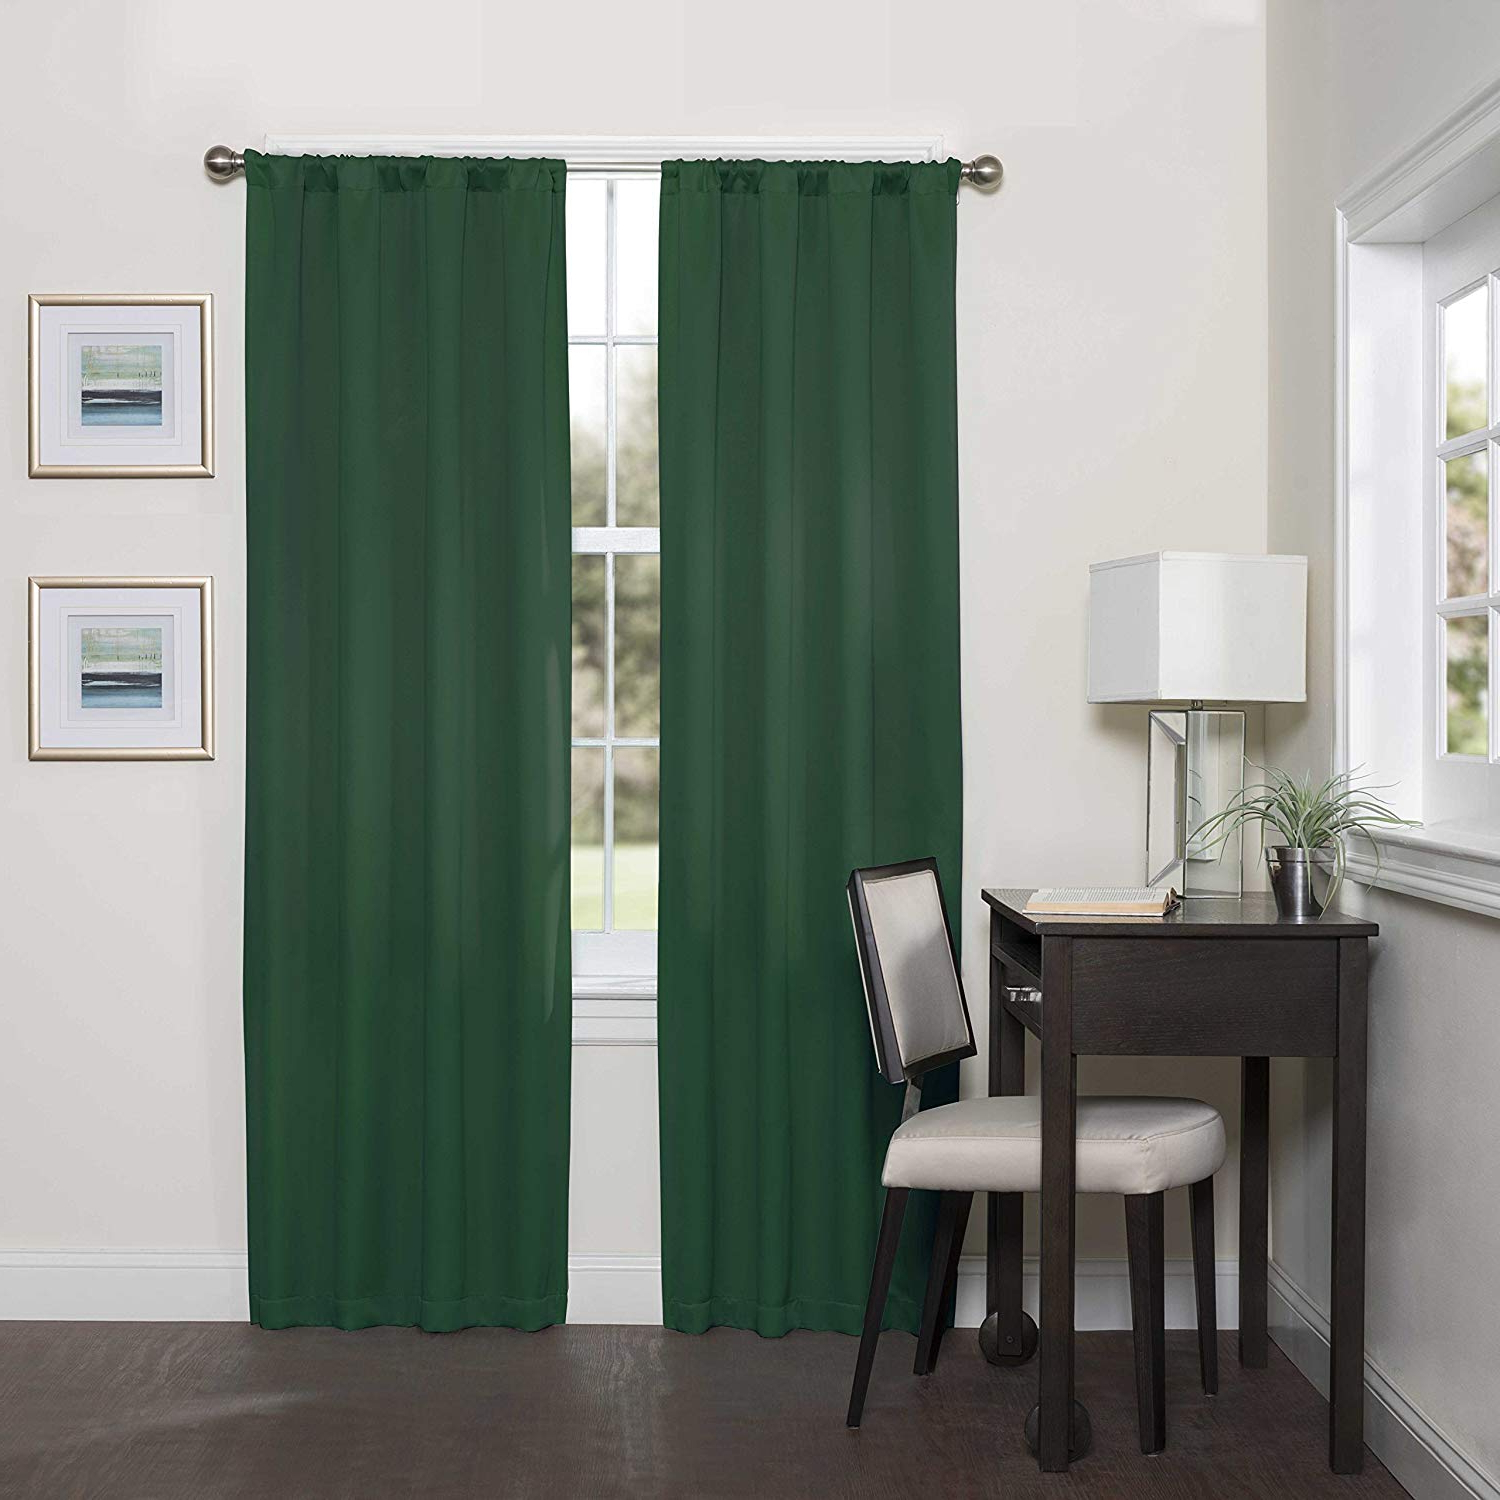 Eclipse Darrell Thermaweave Blackout Window Curtain Panel 37X84 Inches Emerald Pertaining To Most Recent Thermaweave Blackout Curtains (View 5 of 20)